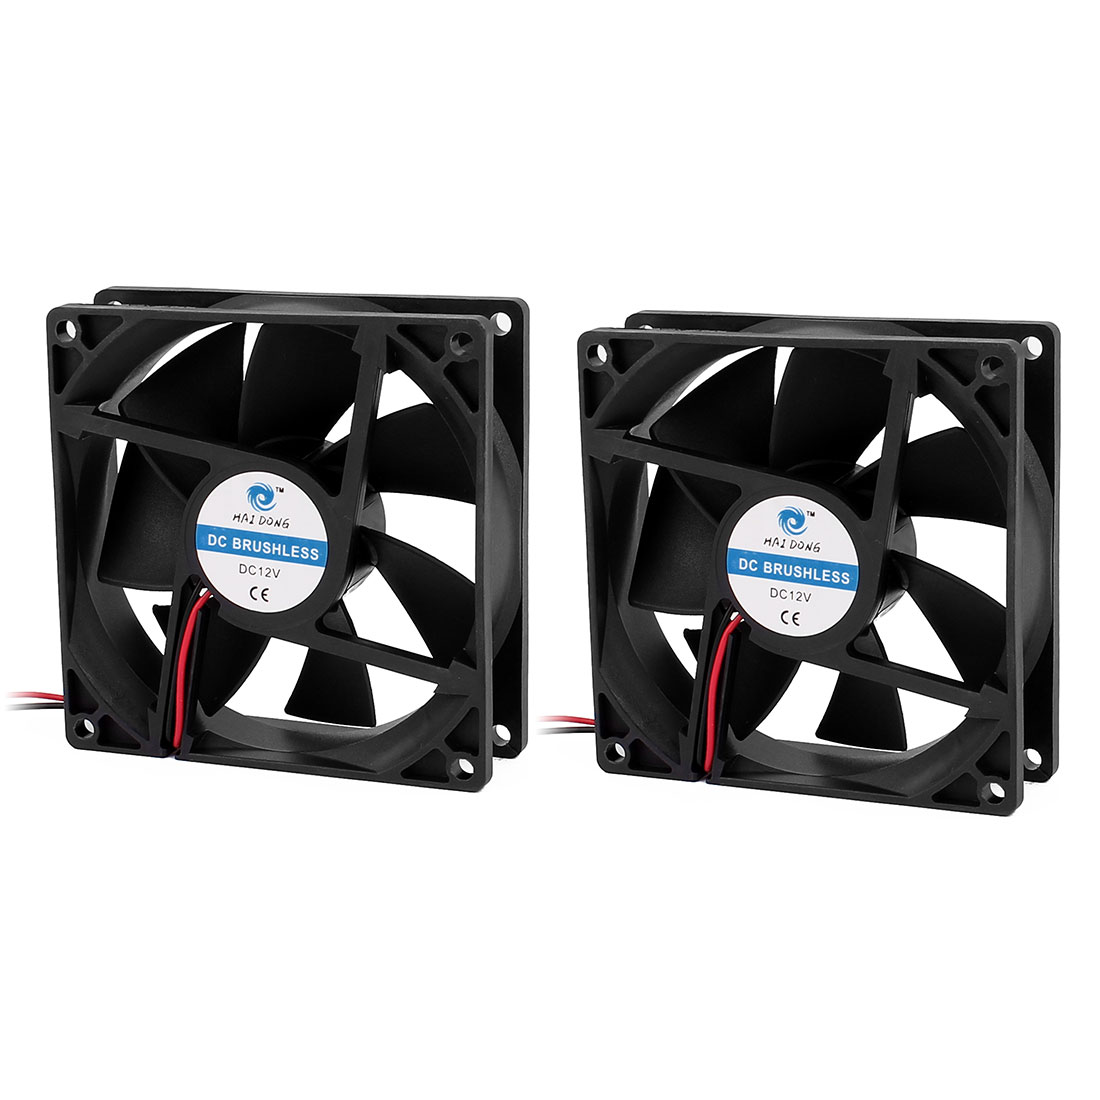 2Pcs 92 x 25mm DC 12V 0.18A Brushless CPU Cooler Cooling Fan Black Power 2.16W